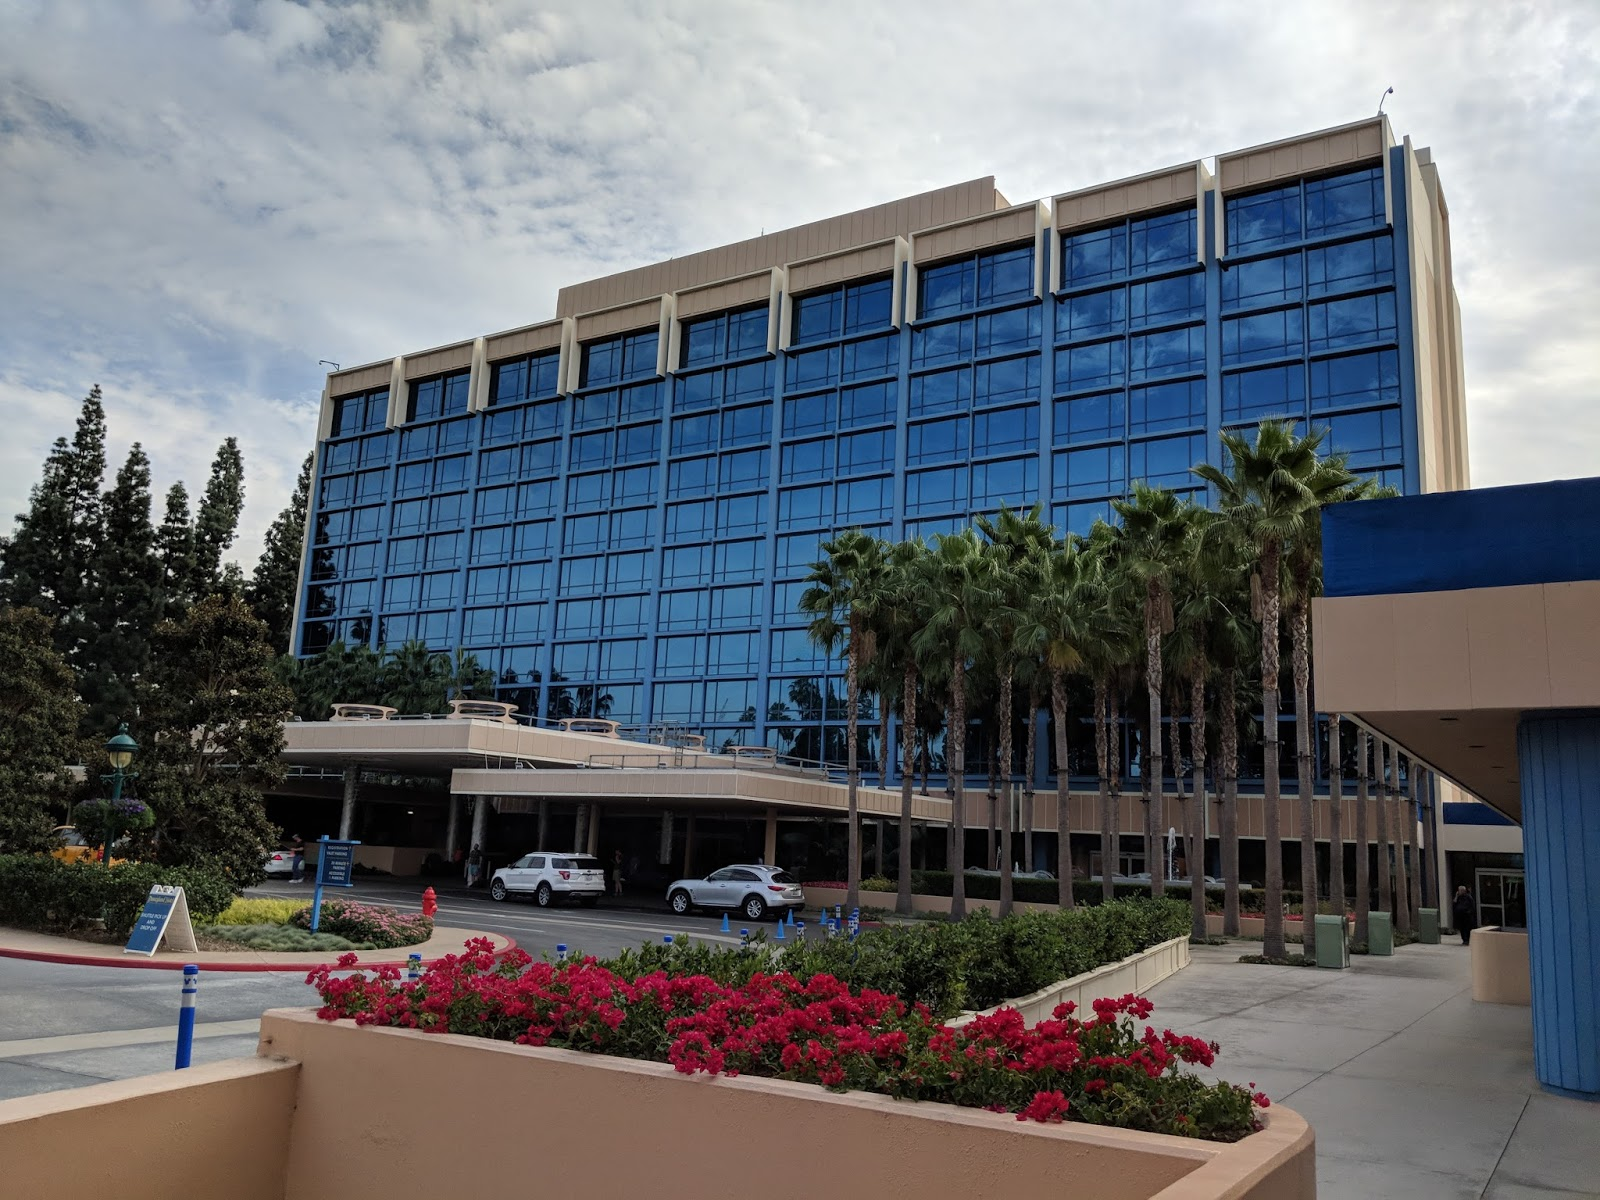 anaheim hotels with kitchen near disneyland aid classic mixer review hotel